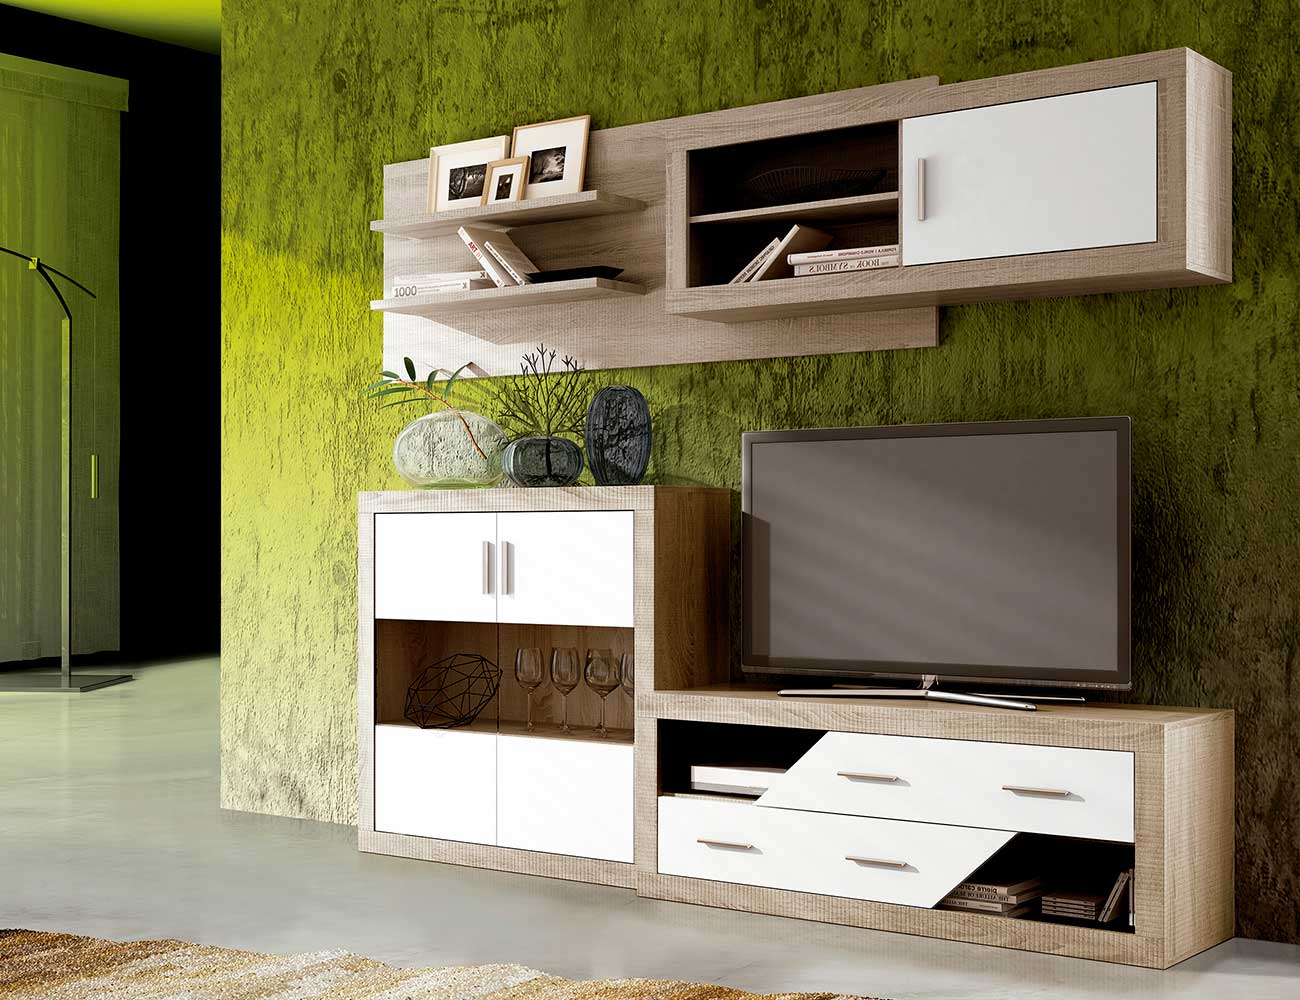 Mueble salon moderno cambrian blanco